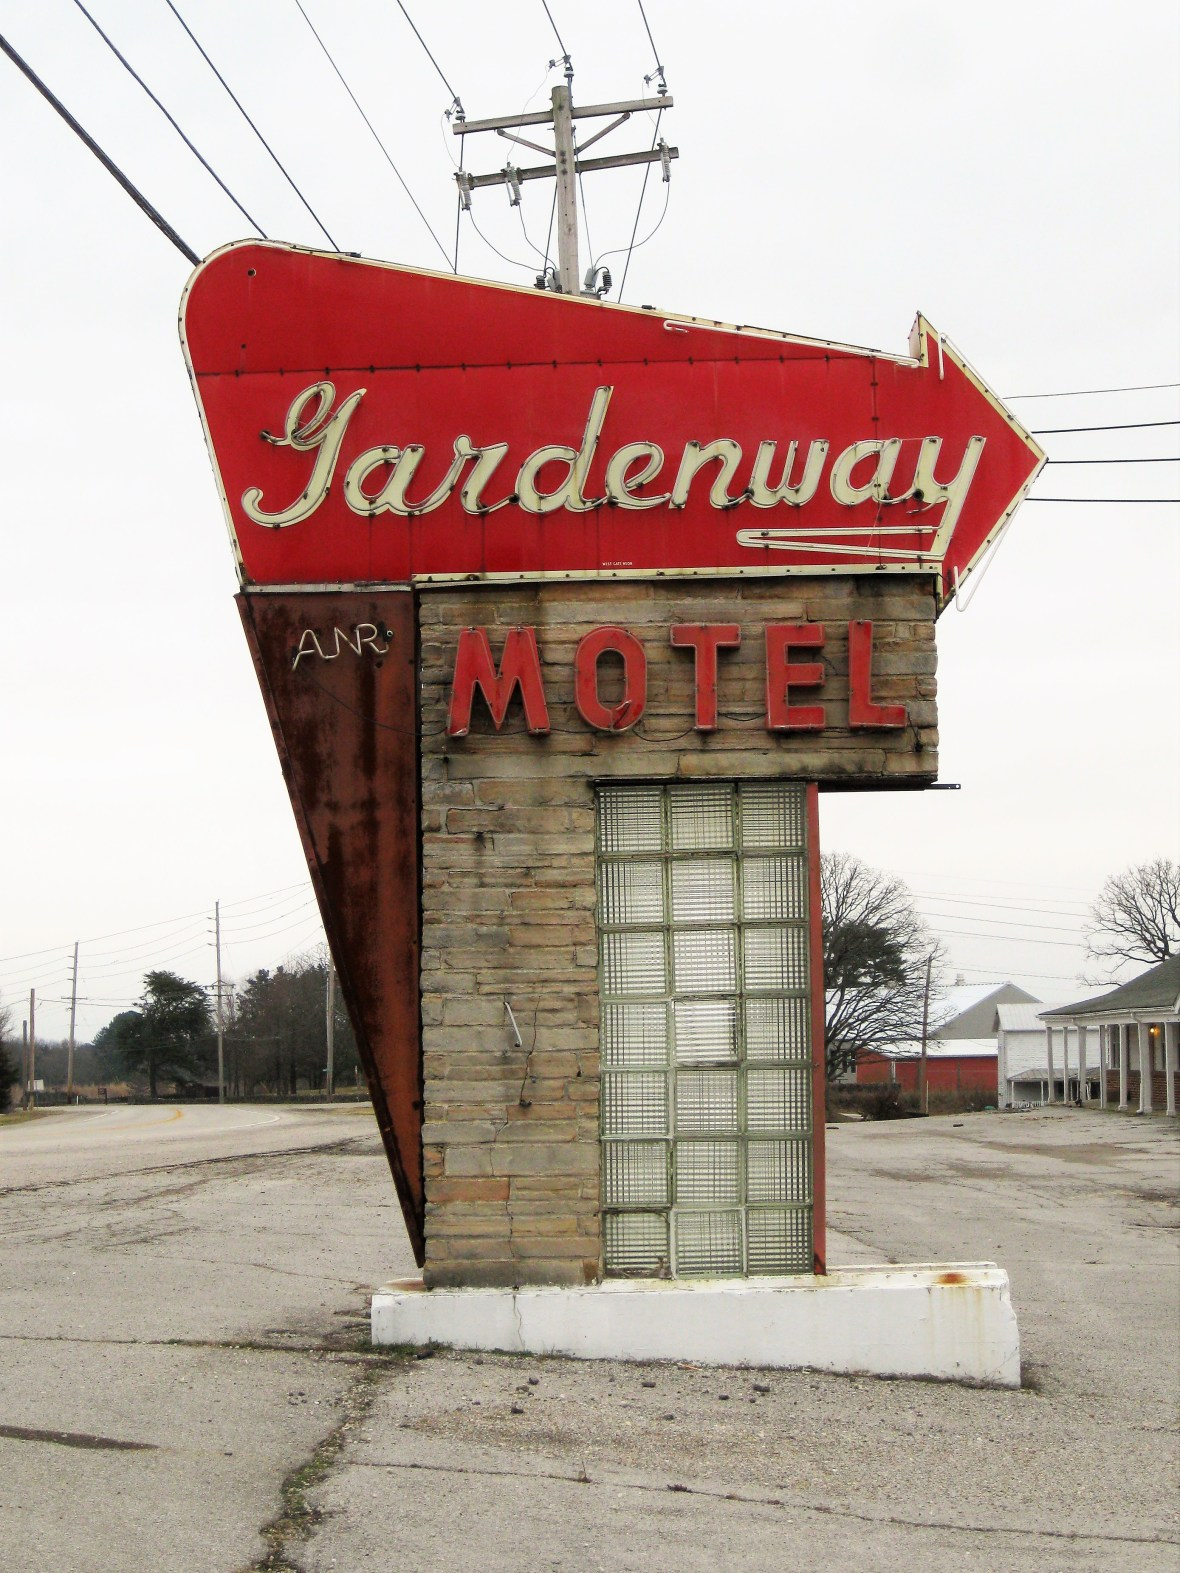 Gardenway Motel - 2958 Missouri Route 100, Villa Ridge, Missouri U.S.A. - January 22, 2017